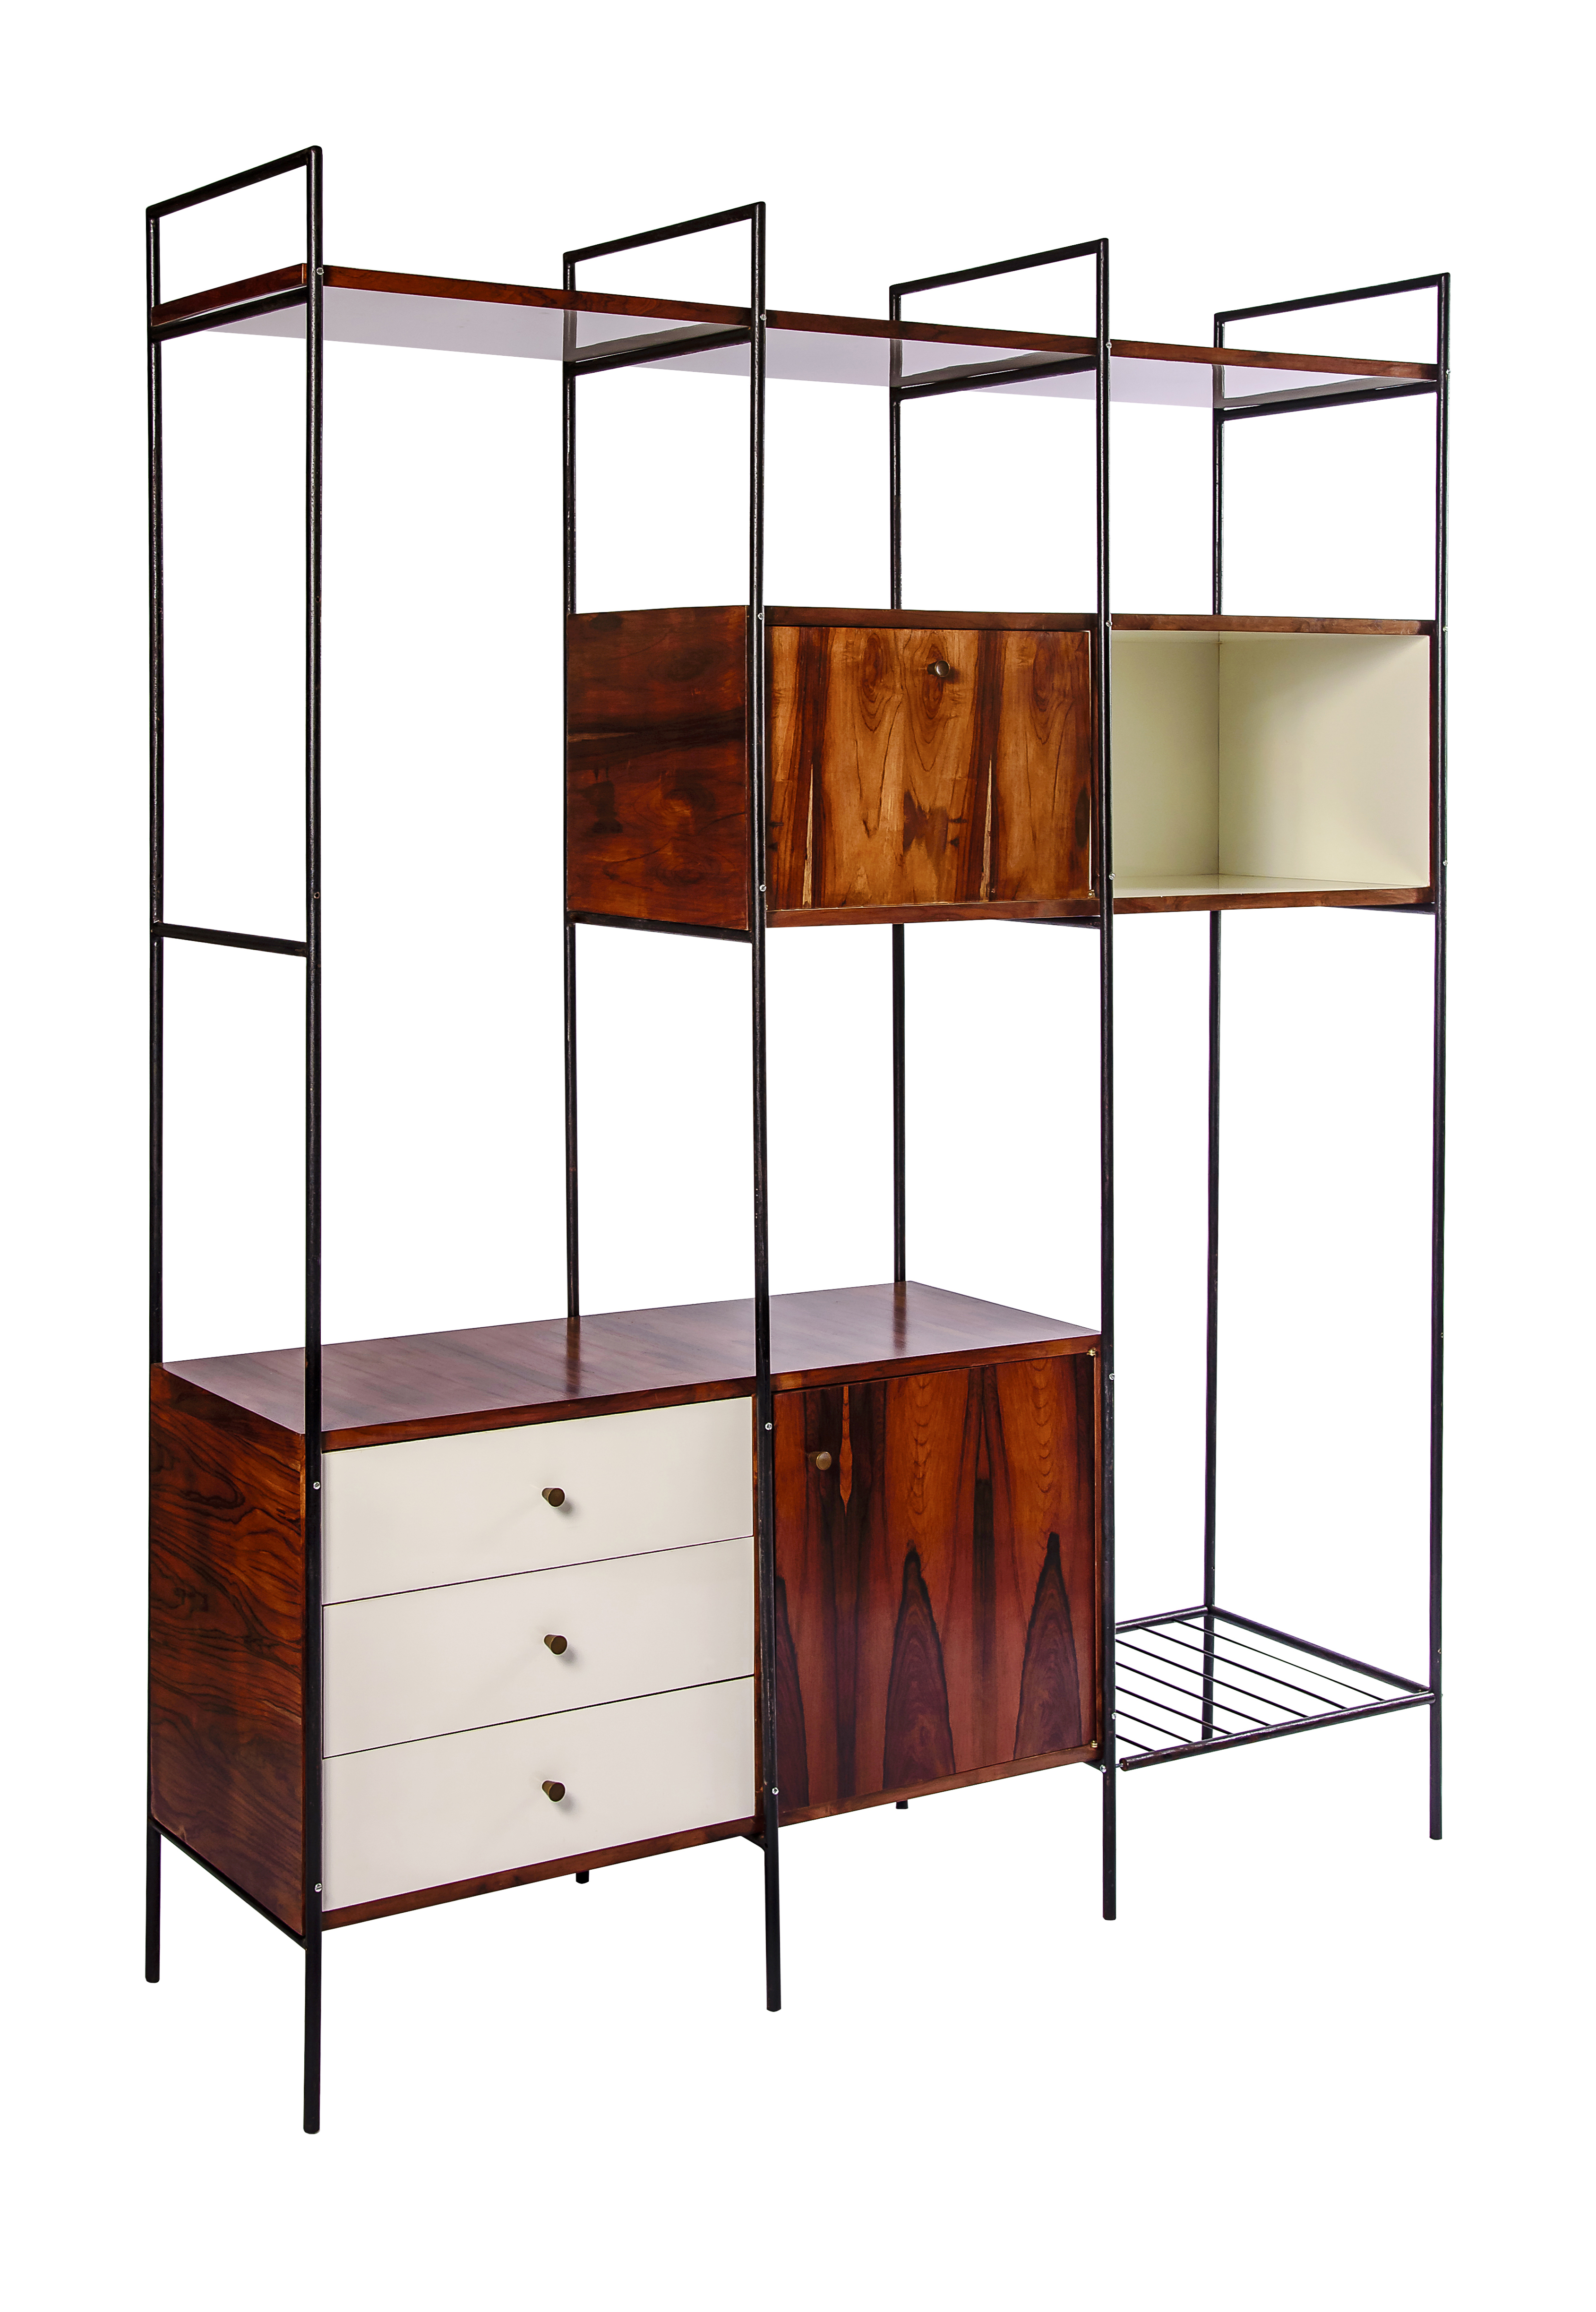 Geraldo de Barros, Shelving Unit MF 710 (Estante MF 710; manufactured by Unilabor), 1954, Los Angeles County Museum of Art, purchased with funds provided by the Bernard and Edith Lewin Collection of Mexican Art Deaccession Fund